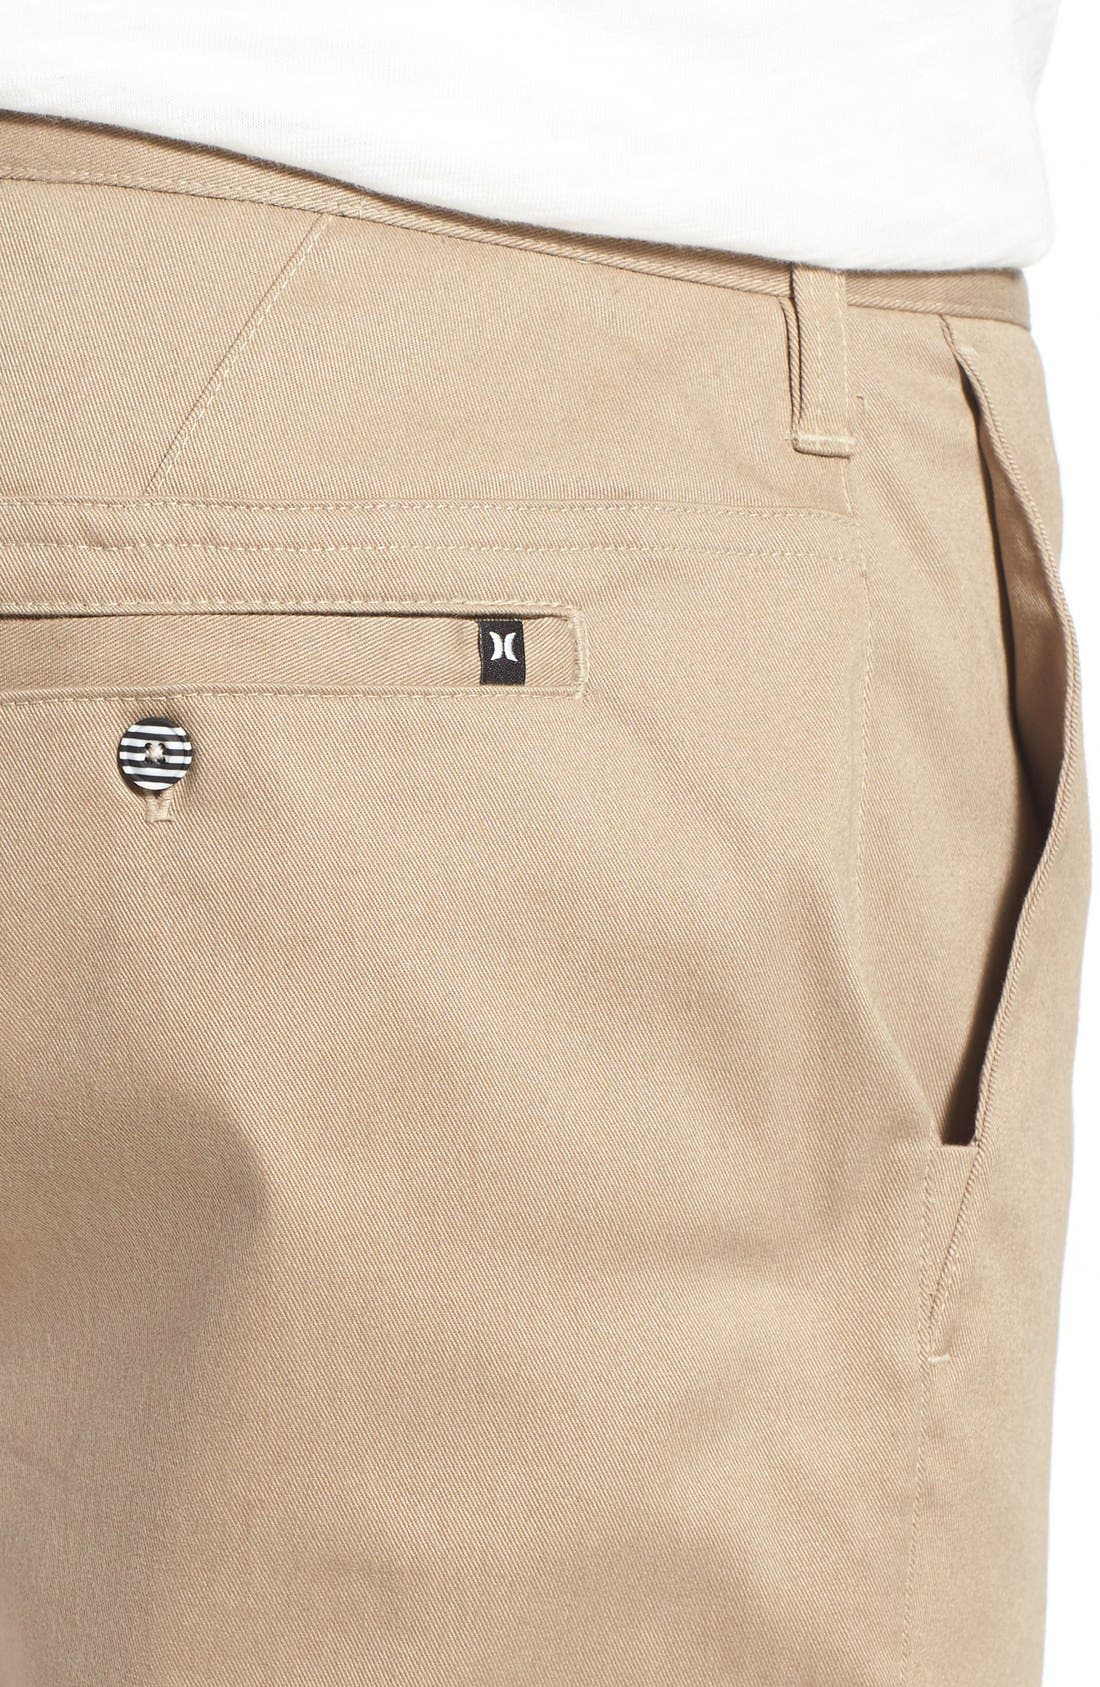 Dri-FIT Chinos,                             Alternate thumbnail 4, color,                             Beige